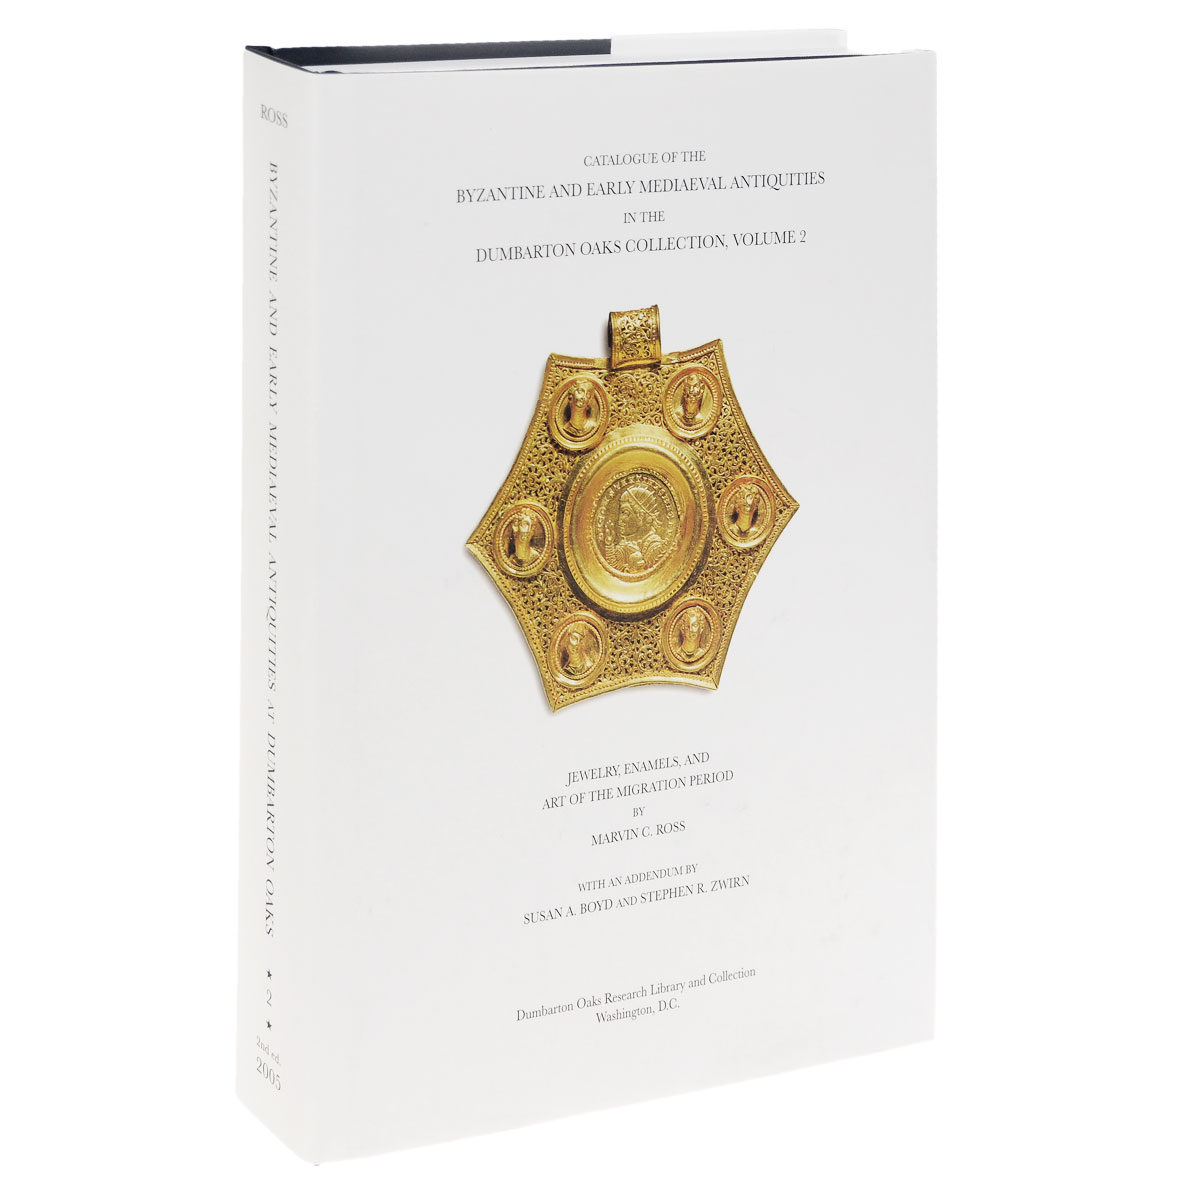 Catalogue of the Byzantine and Early Mediaeval Antiquities in the Dumbarton Oaks Collection: Volume 2: Jewelry, Enamels and Art of the Migration Period kraftwerk kraftwerk 3 d the catalogue 9 lp